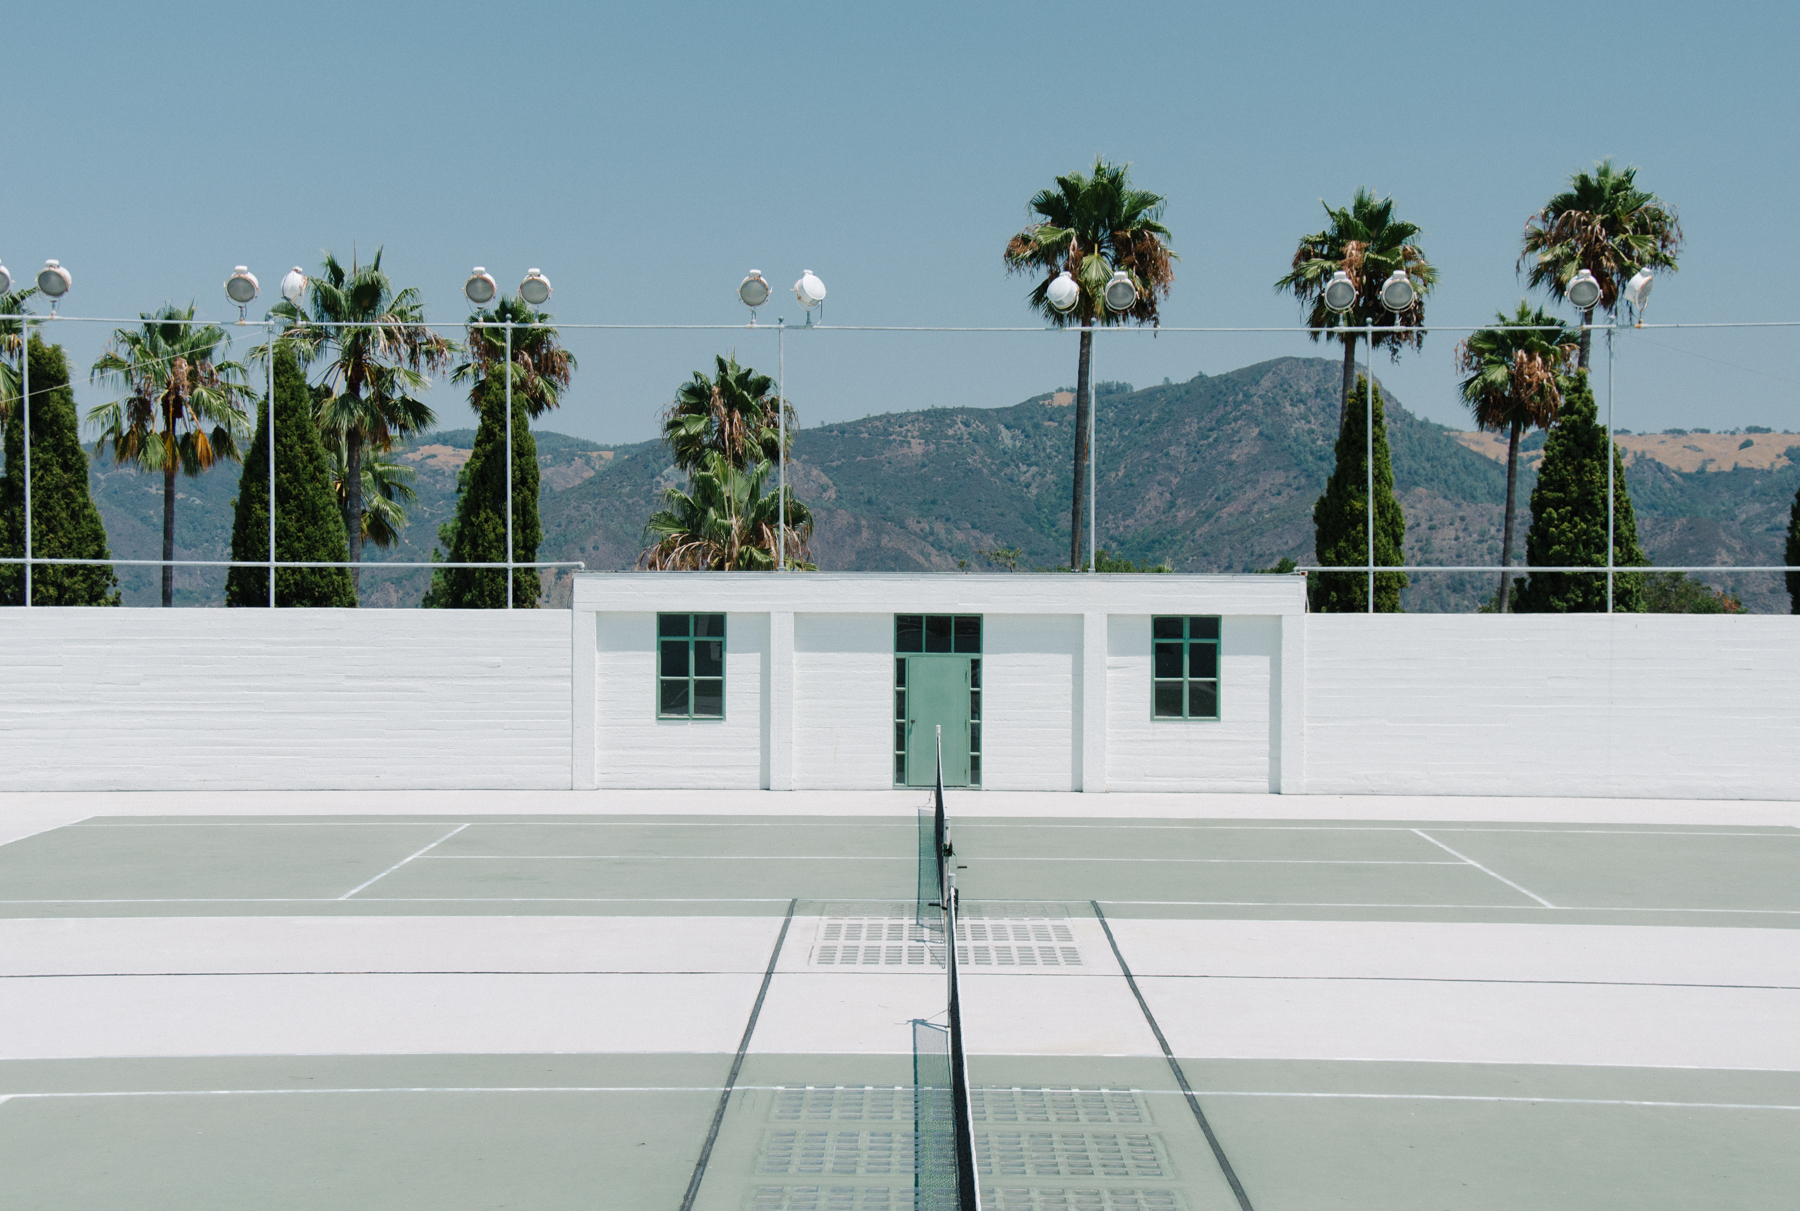 The tennis court is the only minimalist thing at the architectural craziness that is Hearst Castle.